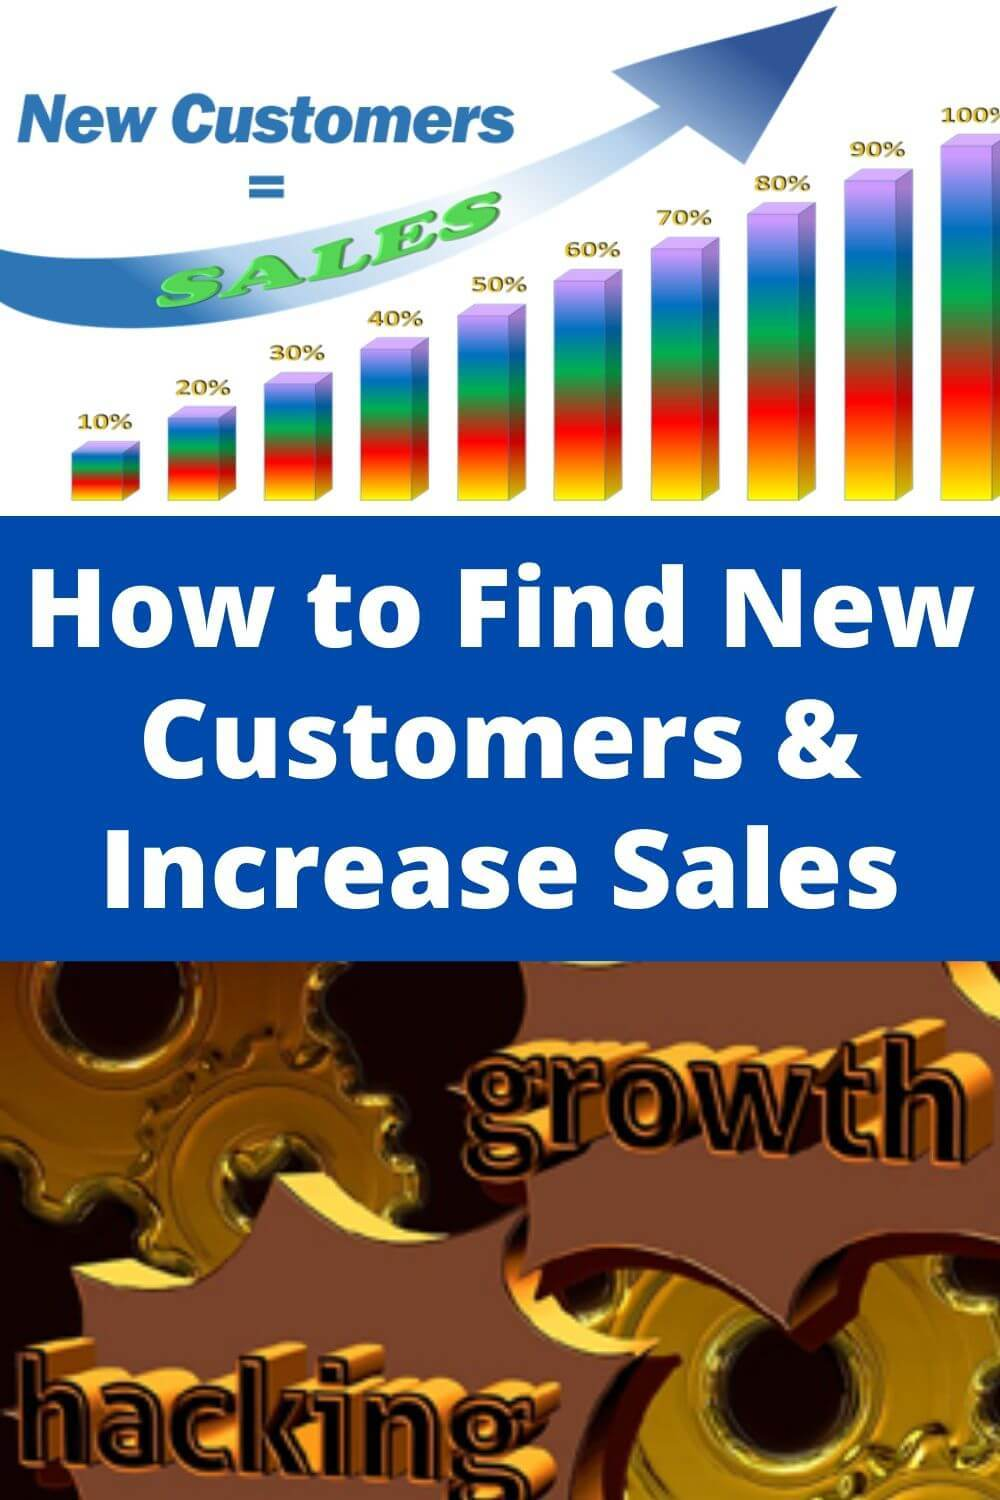 How to Find New Customers & Increase Sales